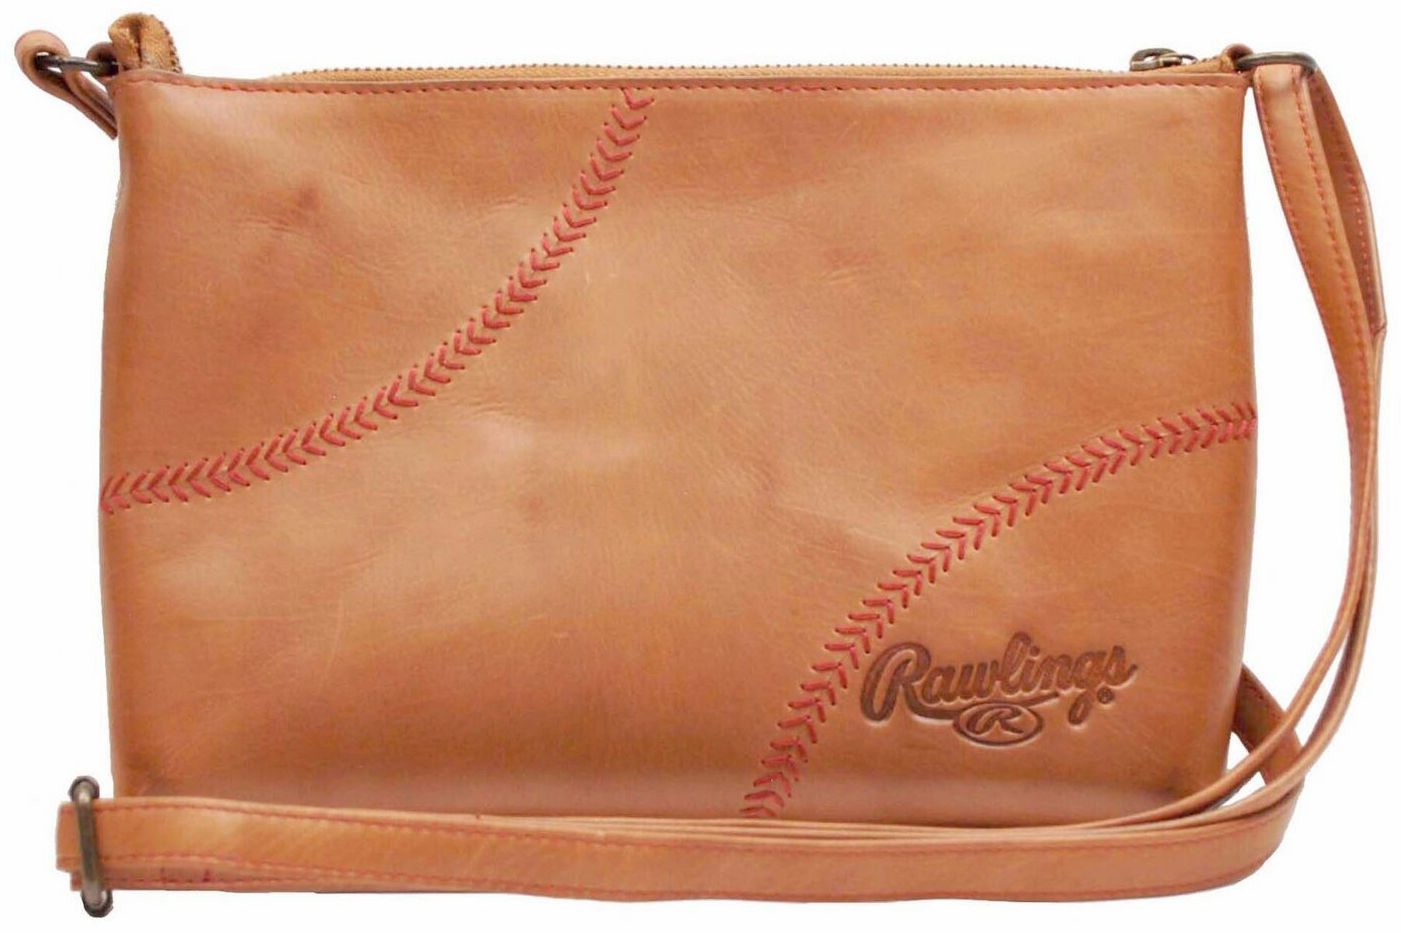 Vintage Tan Leather Baseball Stitch Cross Body Minibag Purse by Rawlings<br>ONLY 1 LEFT!